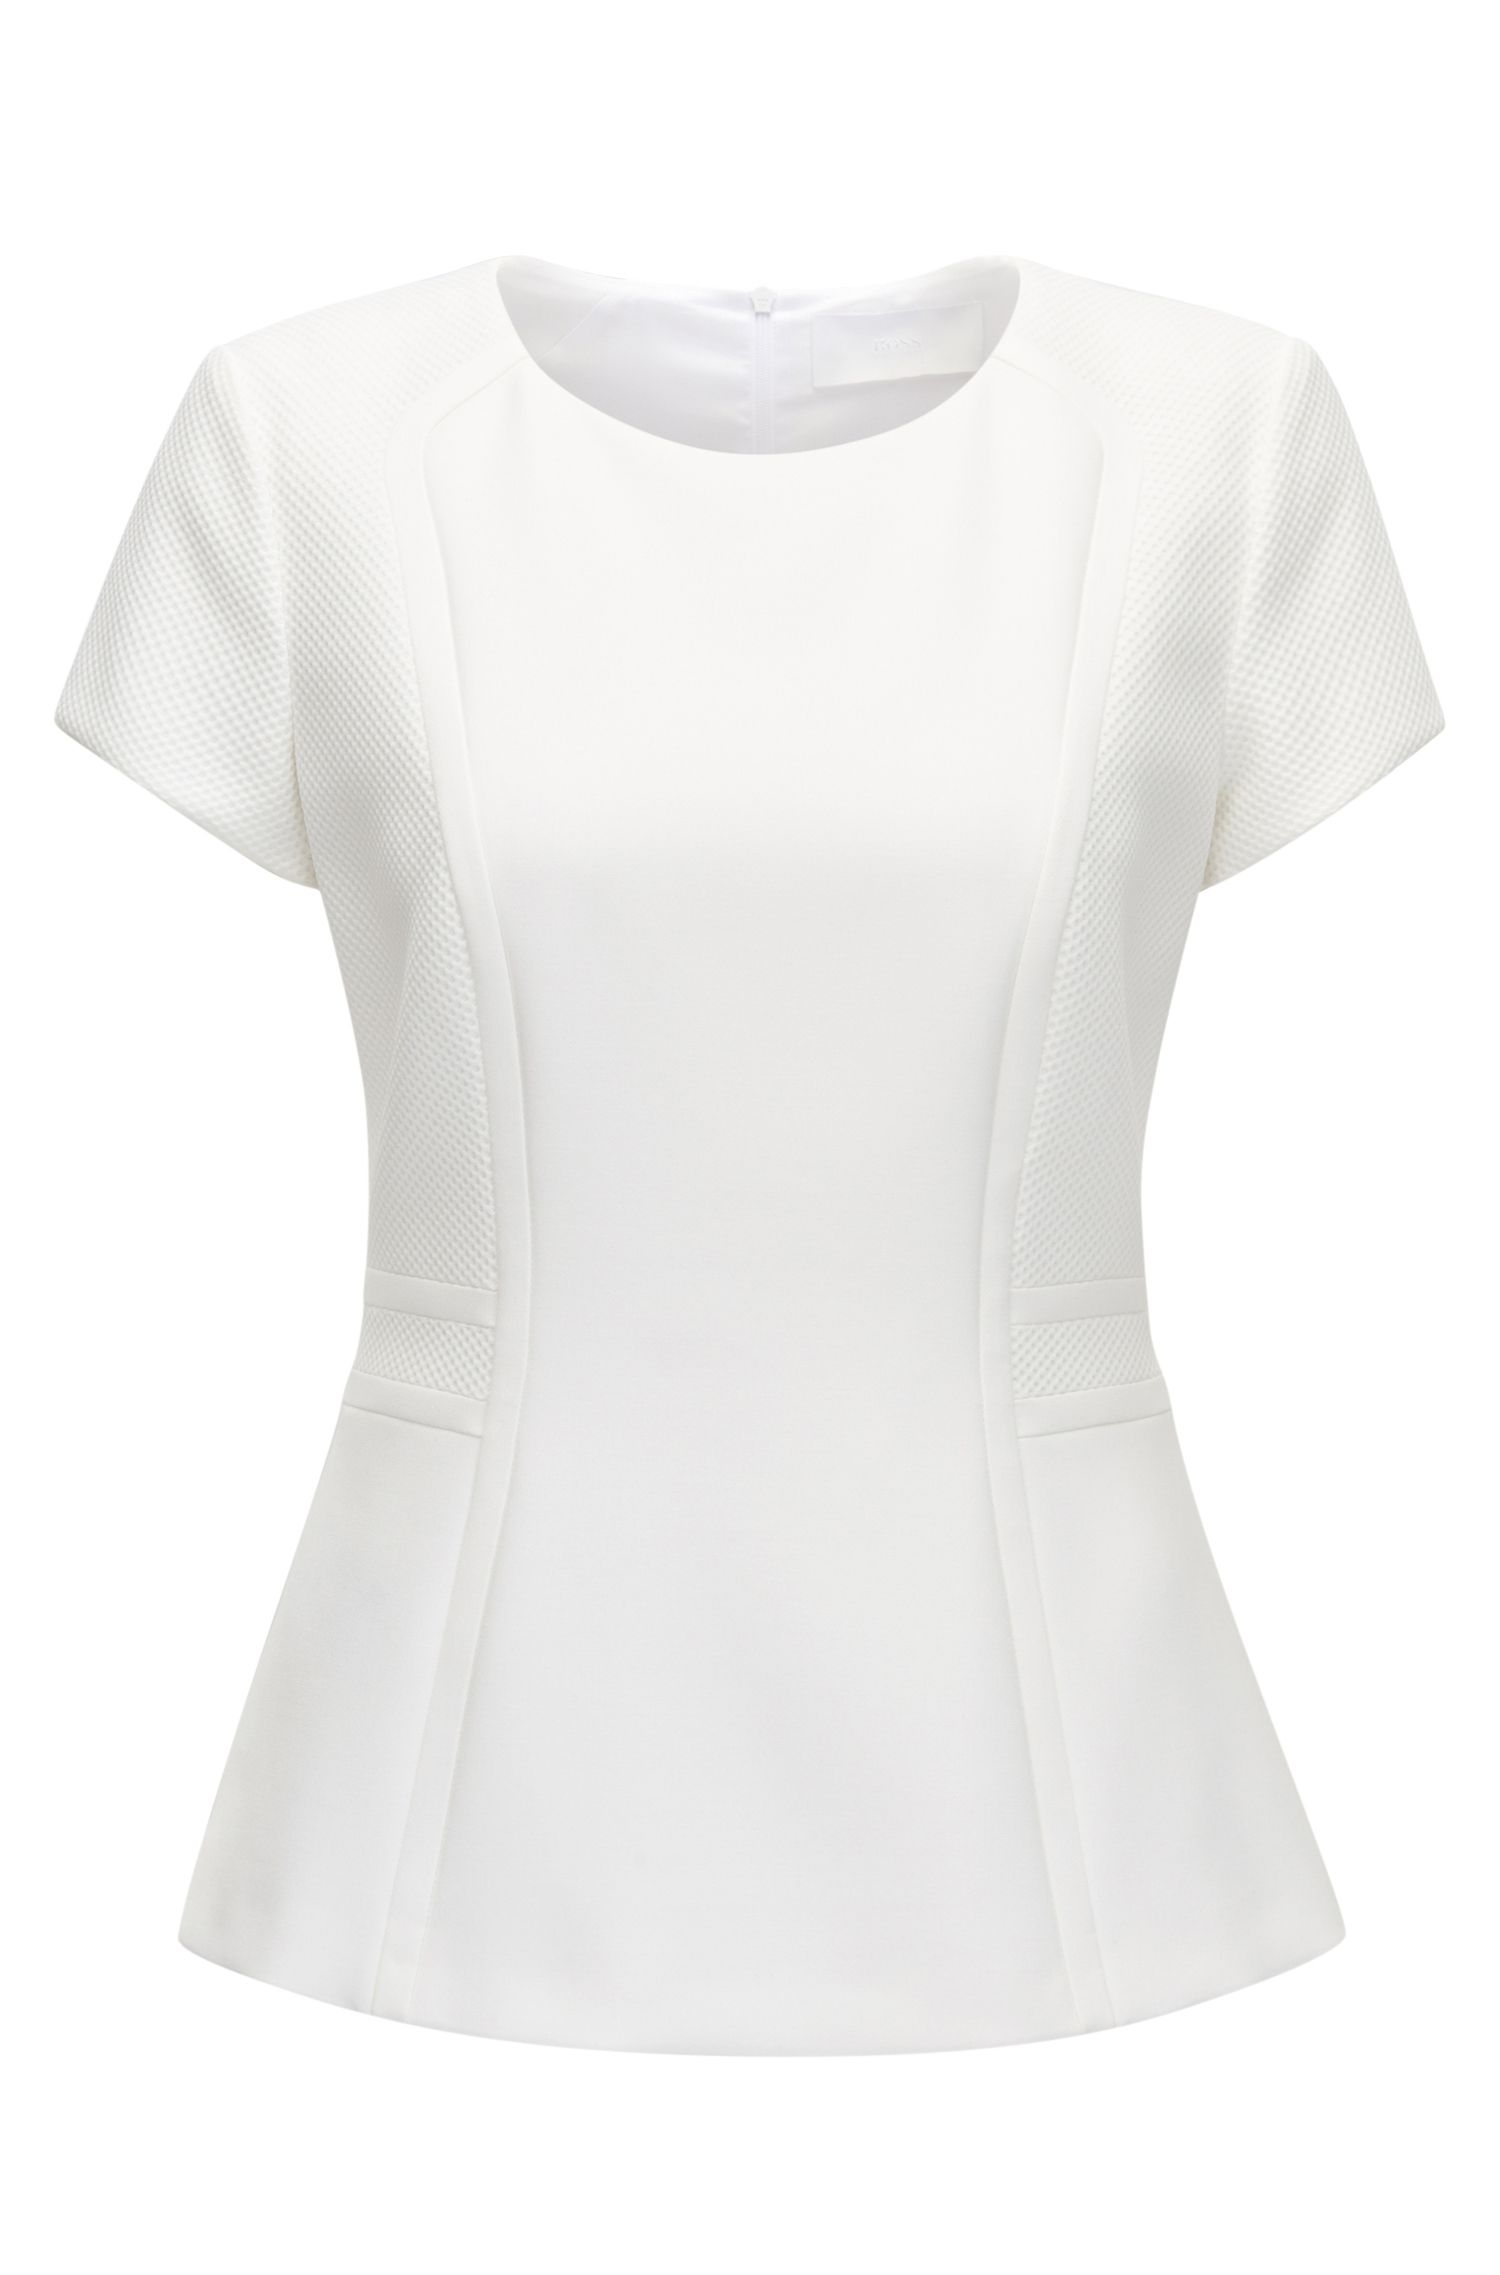 Paneled Peplum Top | Idama